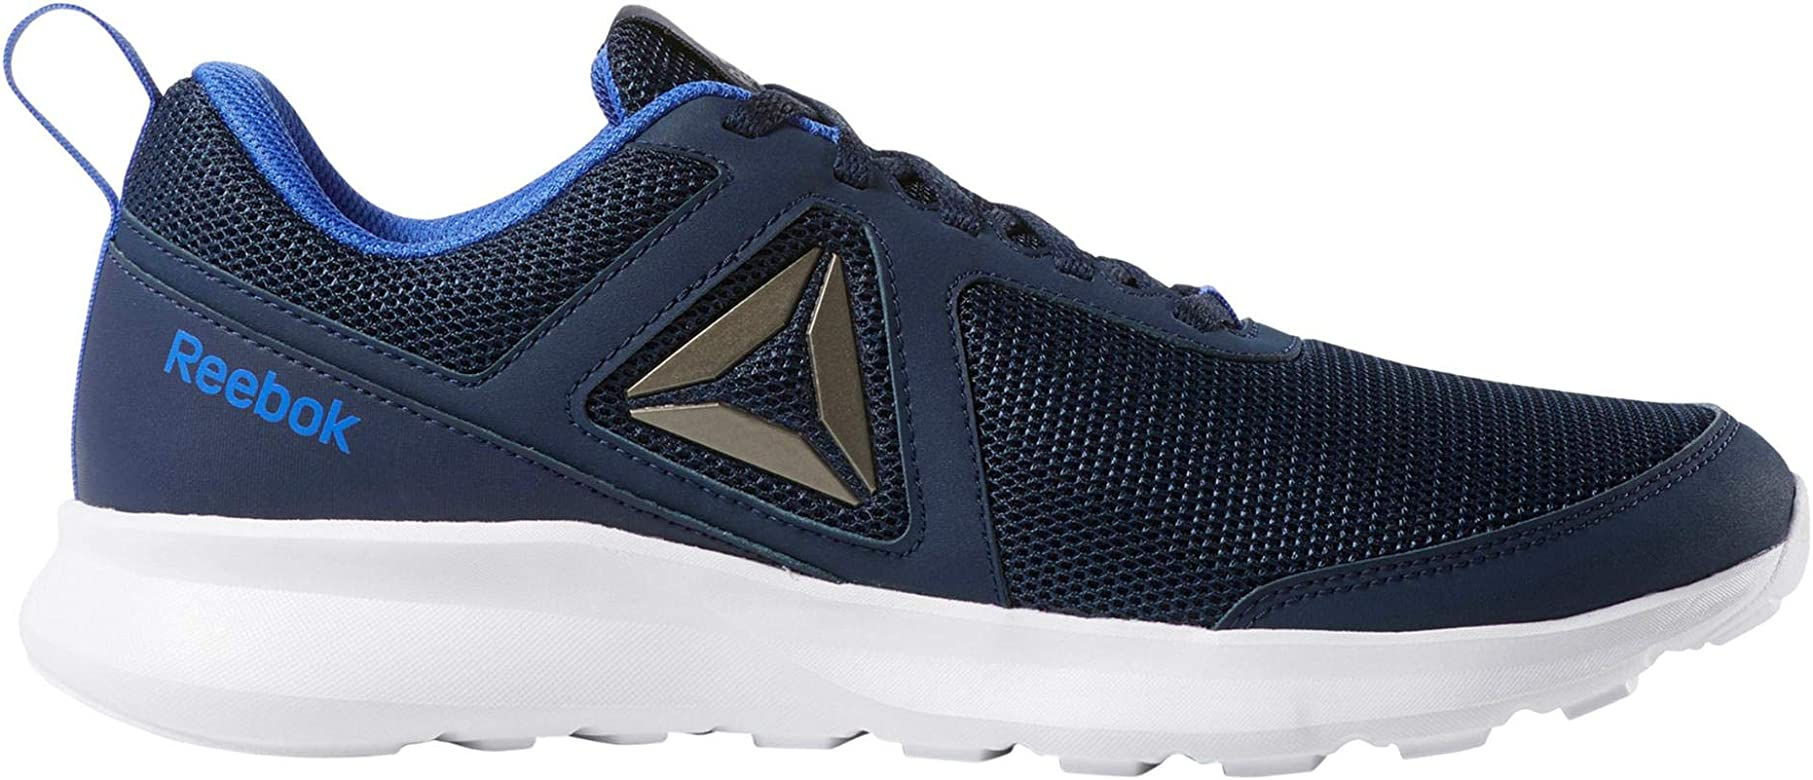 Reebok Quick Motion, Zapatillas de Trail Running para Hombre, Multicolor (Collegiate Navy/Crushed Cobalt/White/Pew 000), 40 1/3 EU: Amazon.es: Zapatos y complementos